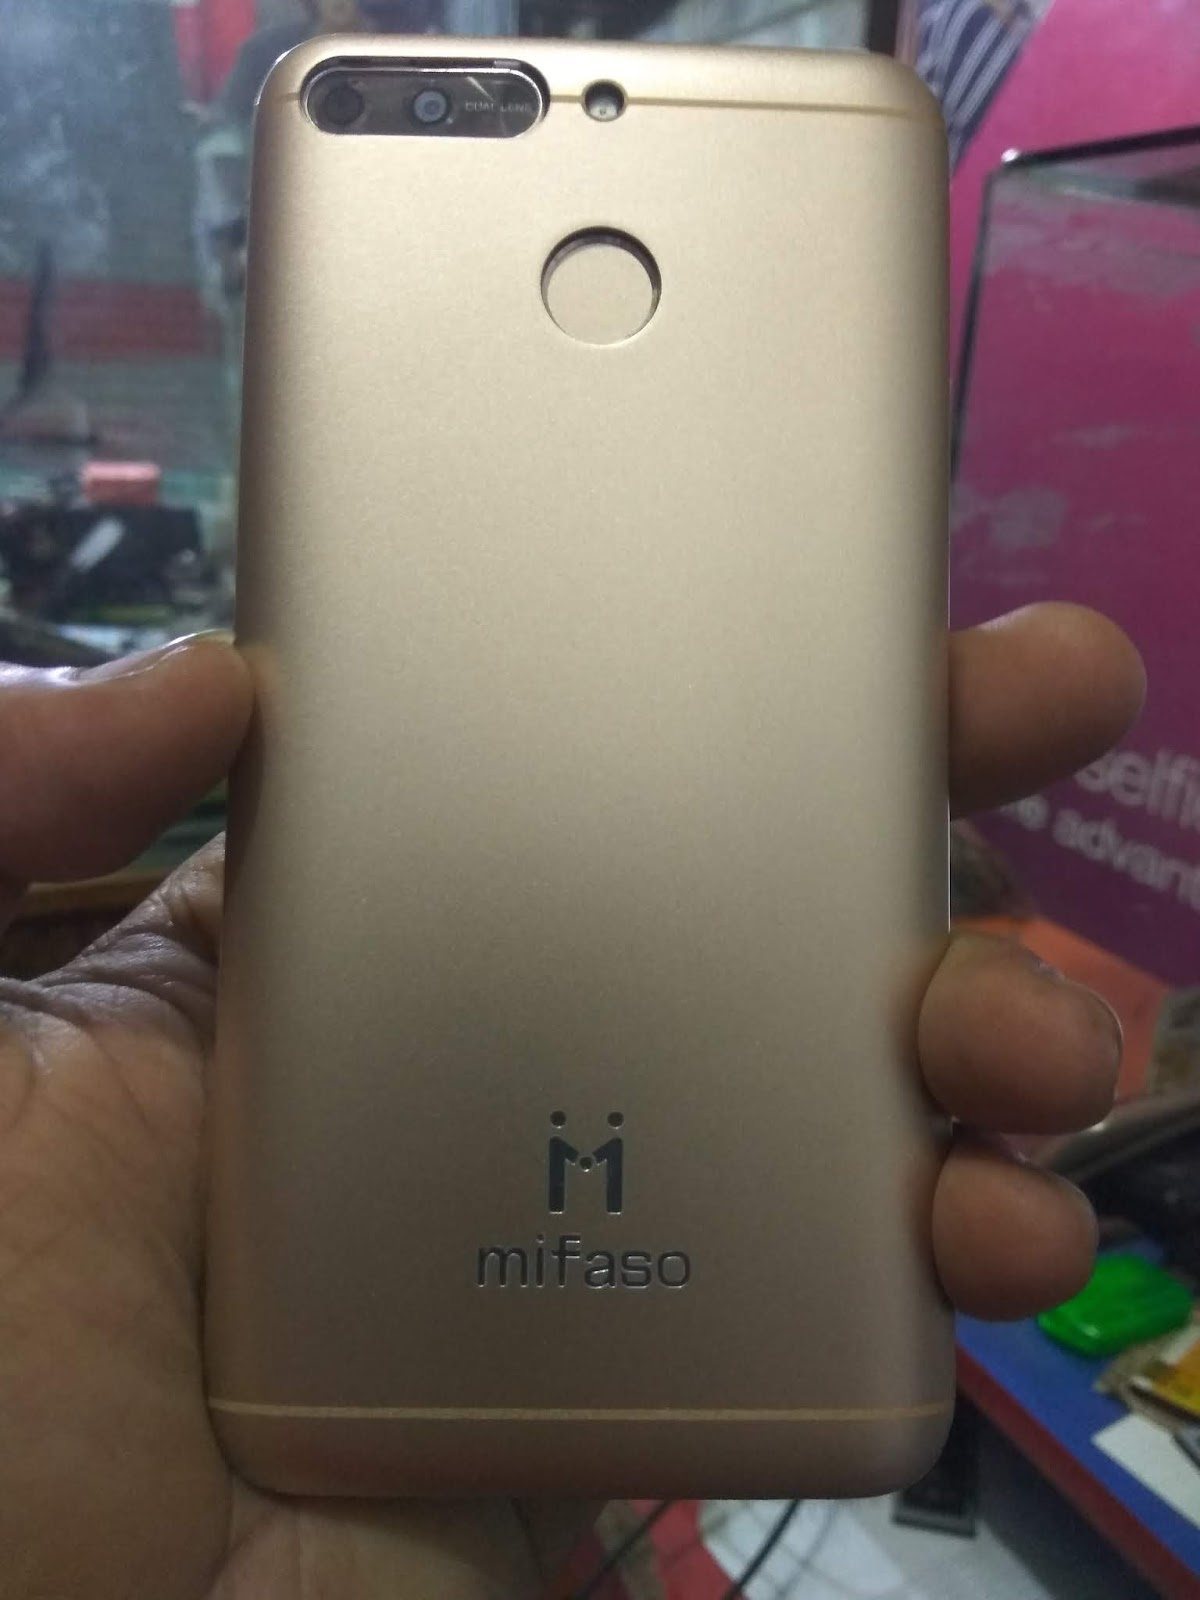 FAISAL GSM: MIFASO X1 FLASH FILE SP7731C { DEAD RECOVERY